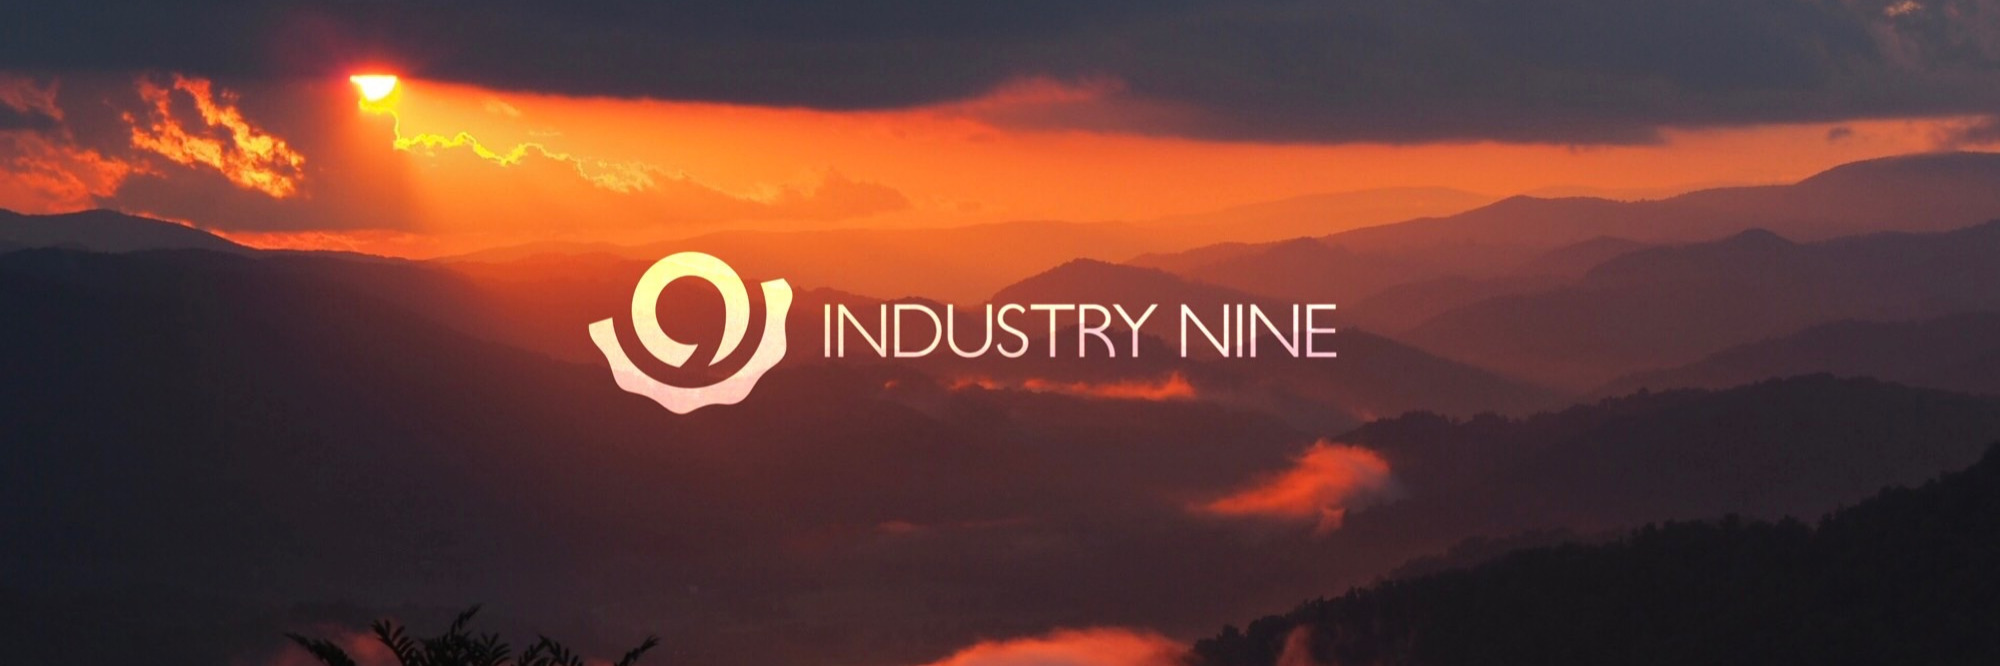 Industry Nine Logo on top of a photo of the Blue Ridge Mountains at sunset.